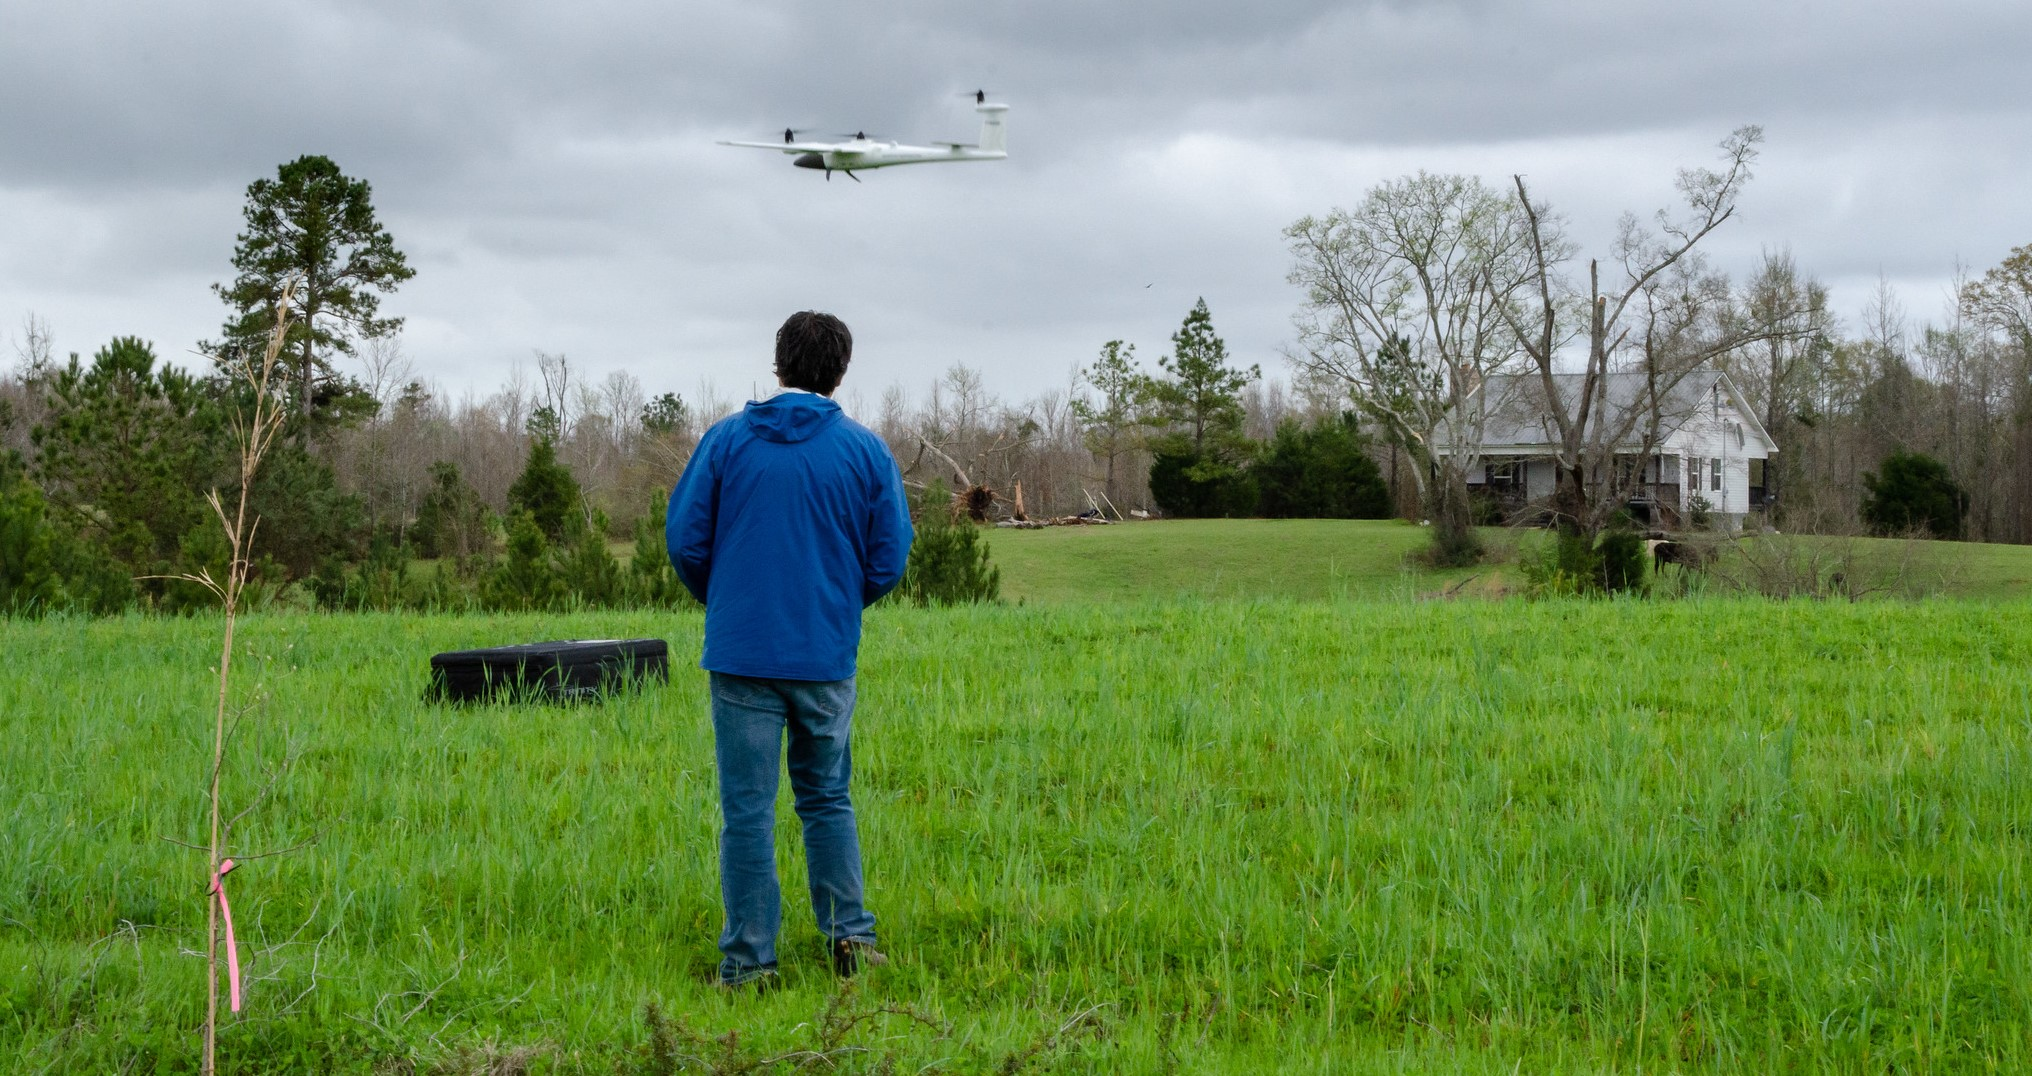 A researcher with the NOAA National Severe Storms Laboratory flies a drone near tornado damage in Alabama in April 2021. Scientists hope aerial images of tornado paths of destruction can better characterize high-wind damage to vegetation and in rural areas to improve disaster response and recovery.